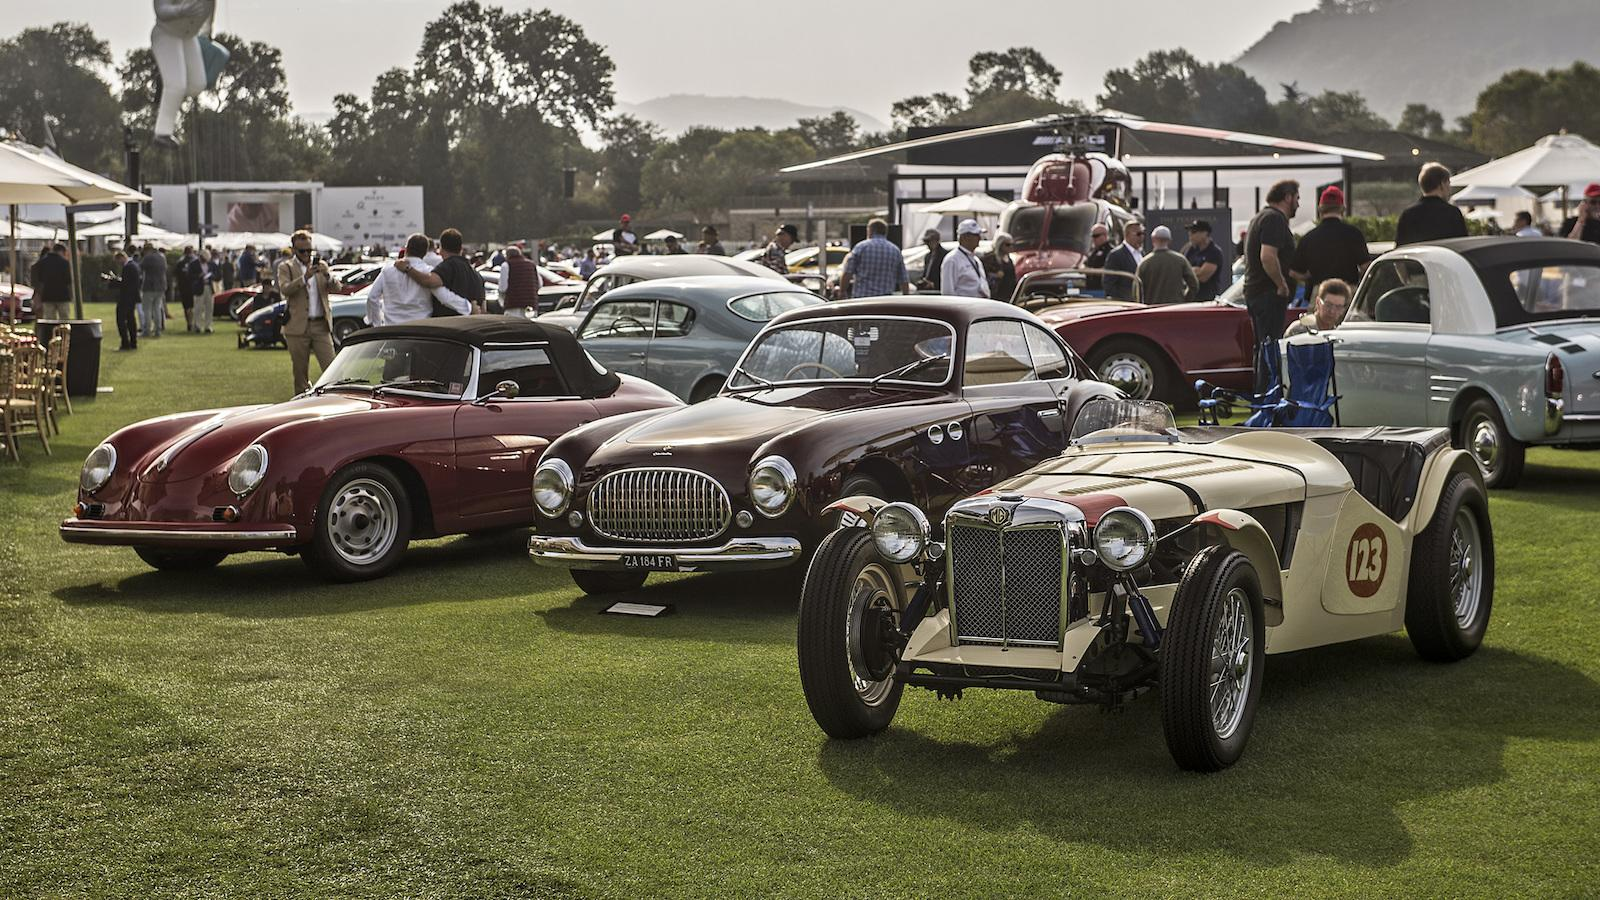 70 years of the Porsche 356 at The Quail